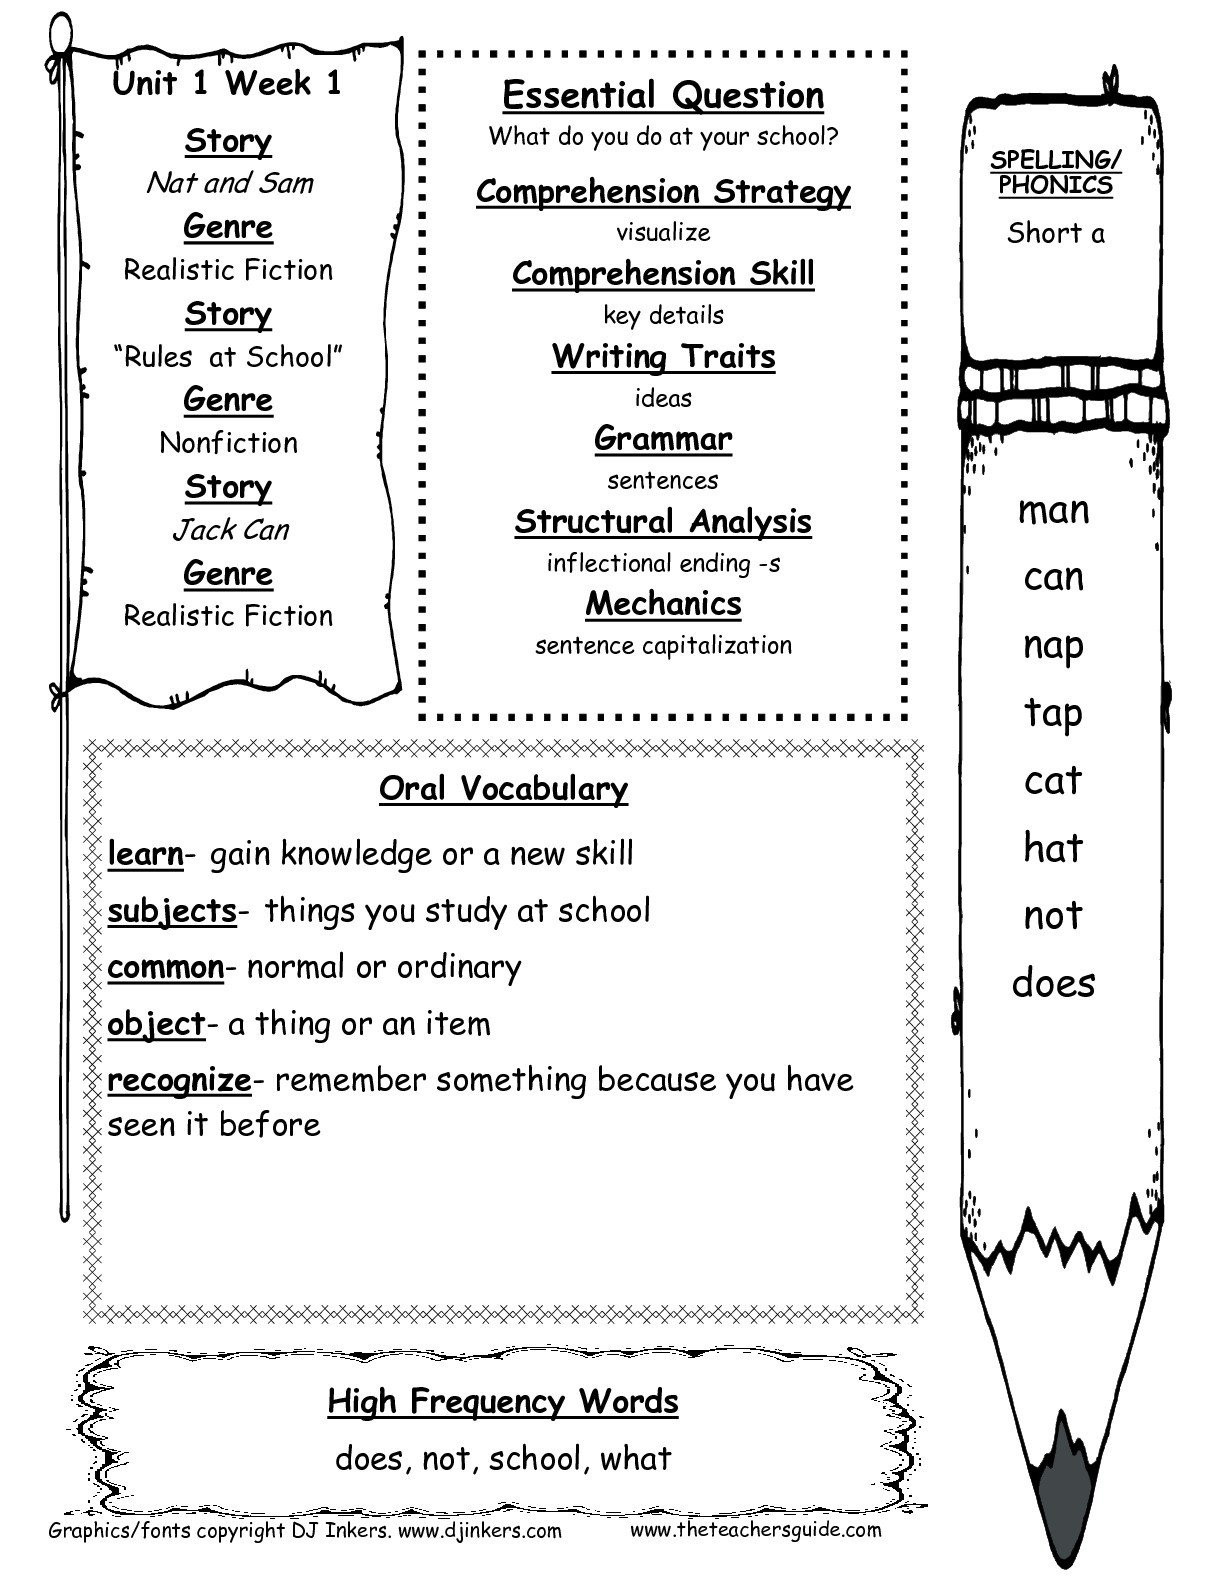 Kindergarten Science Worksheets Free Mcgraw Wonders First Grade Resources and Printouts Free